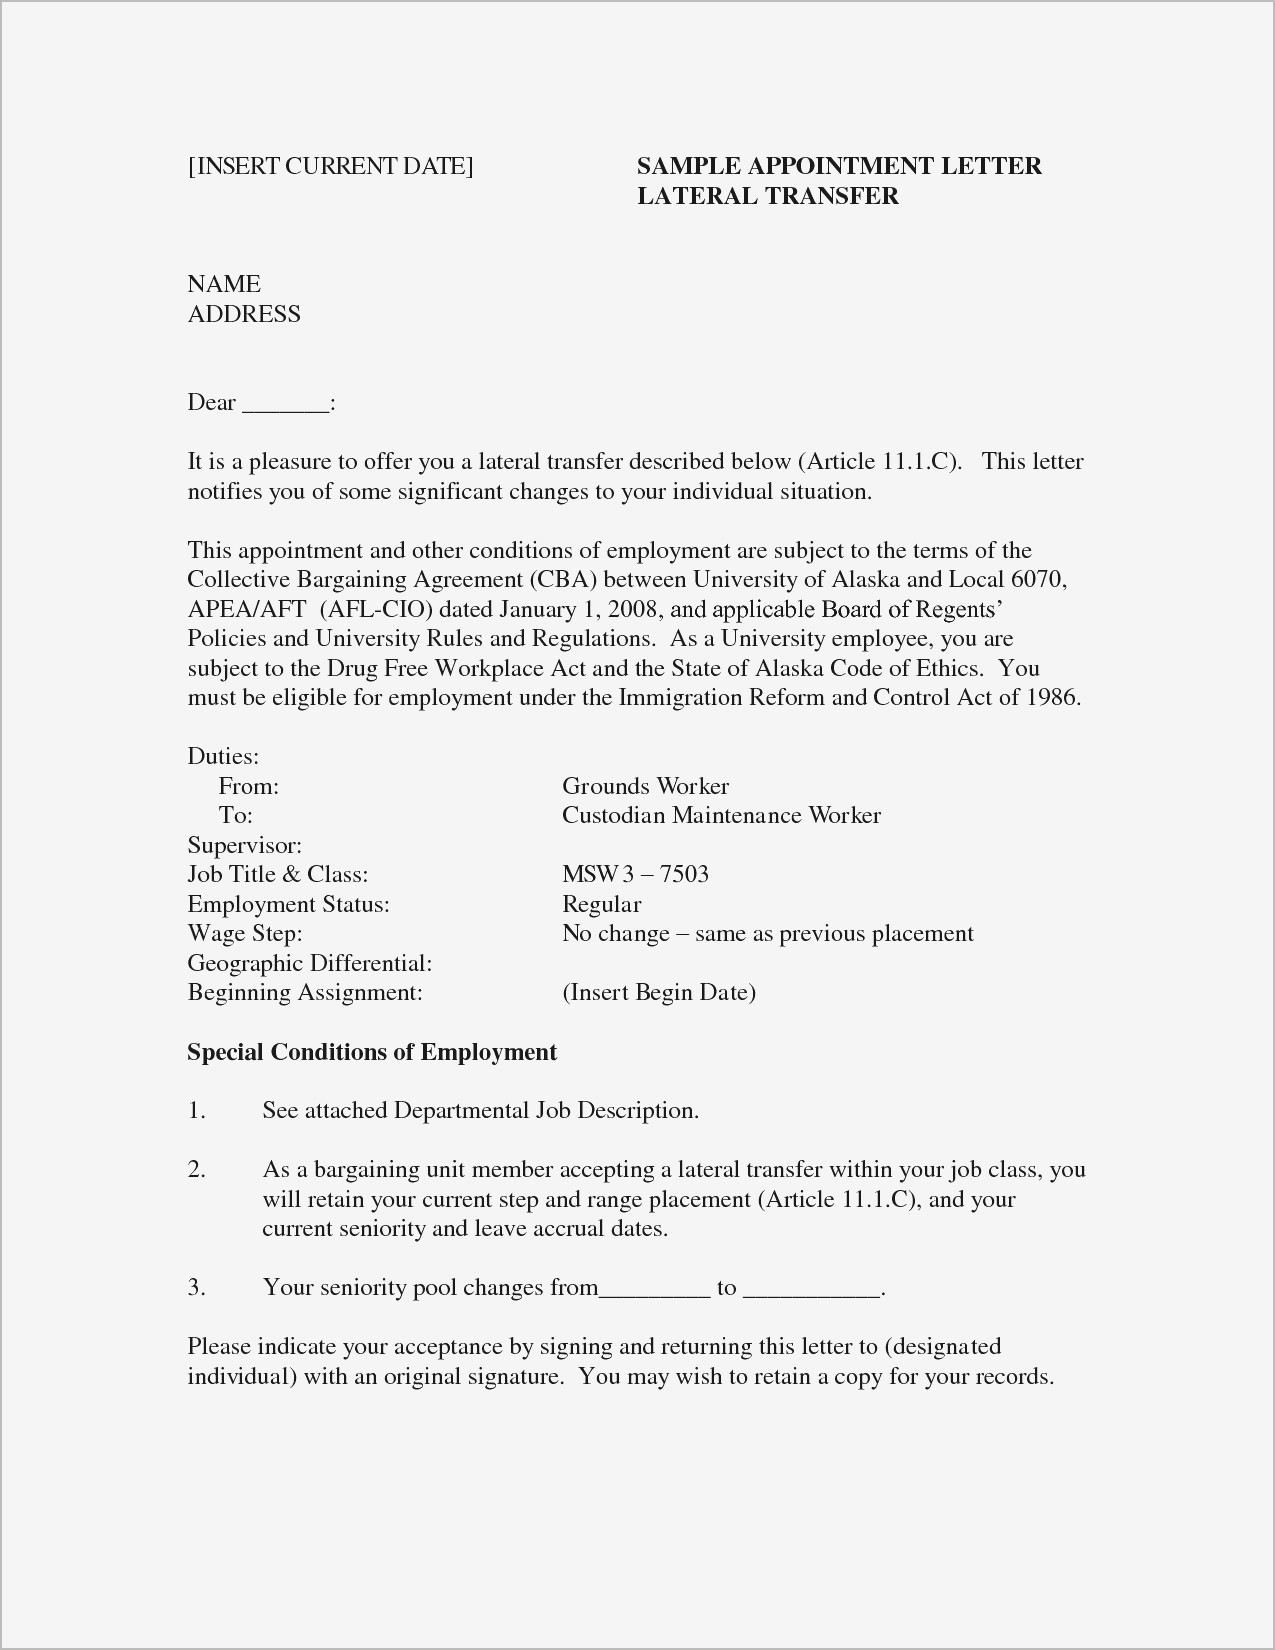 Cover Letter Template for Customer Service Job - Customer Service Resume Cover Letter Samples